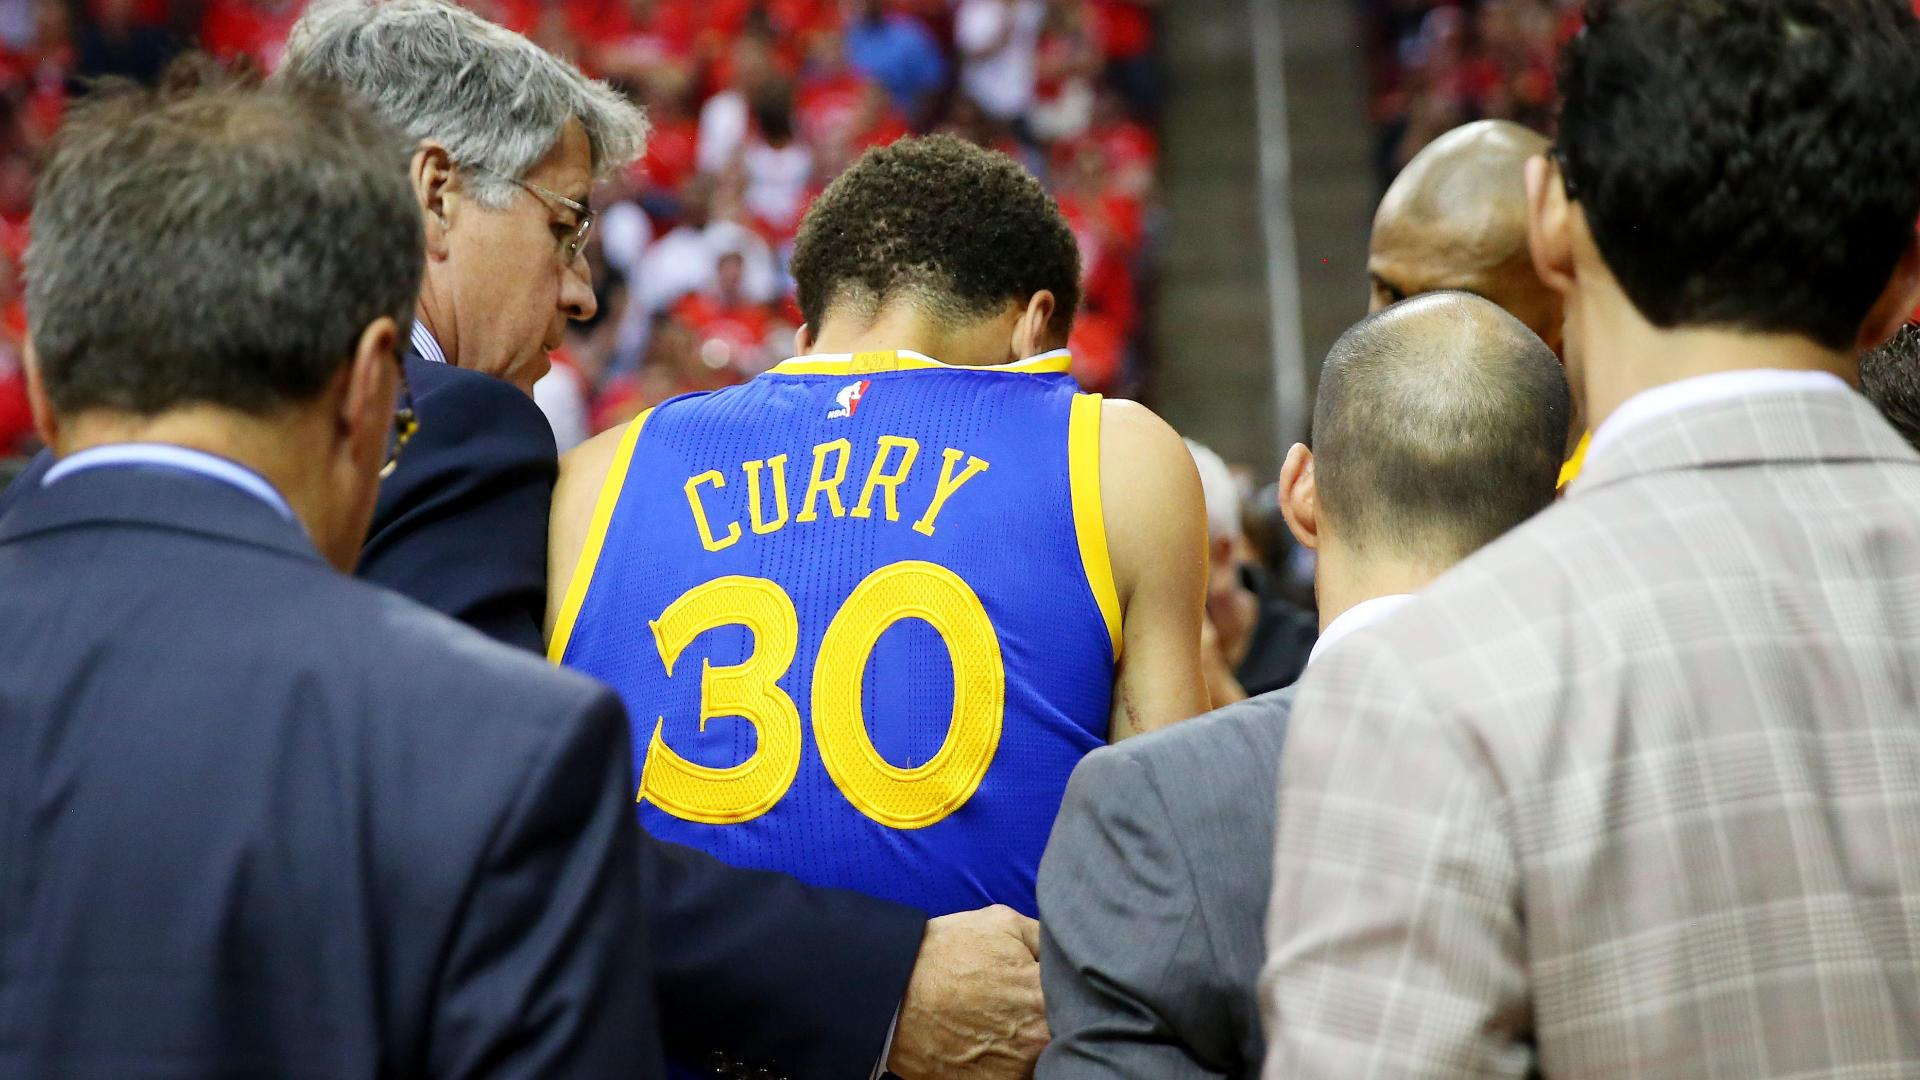 Stephen Curry returns to Game 4 after hard backward fall to court